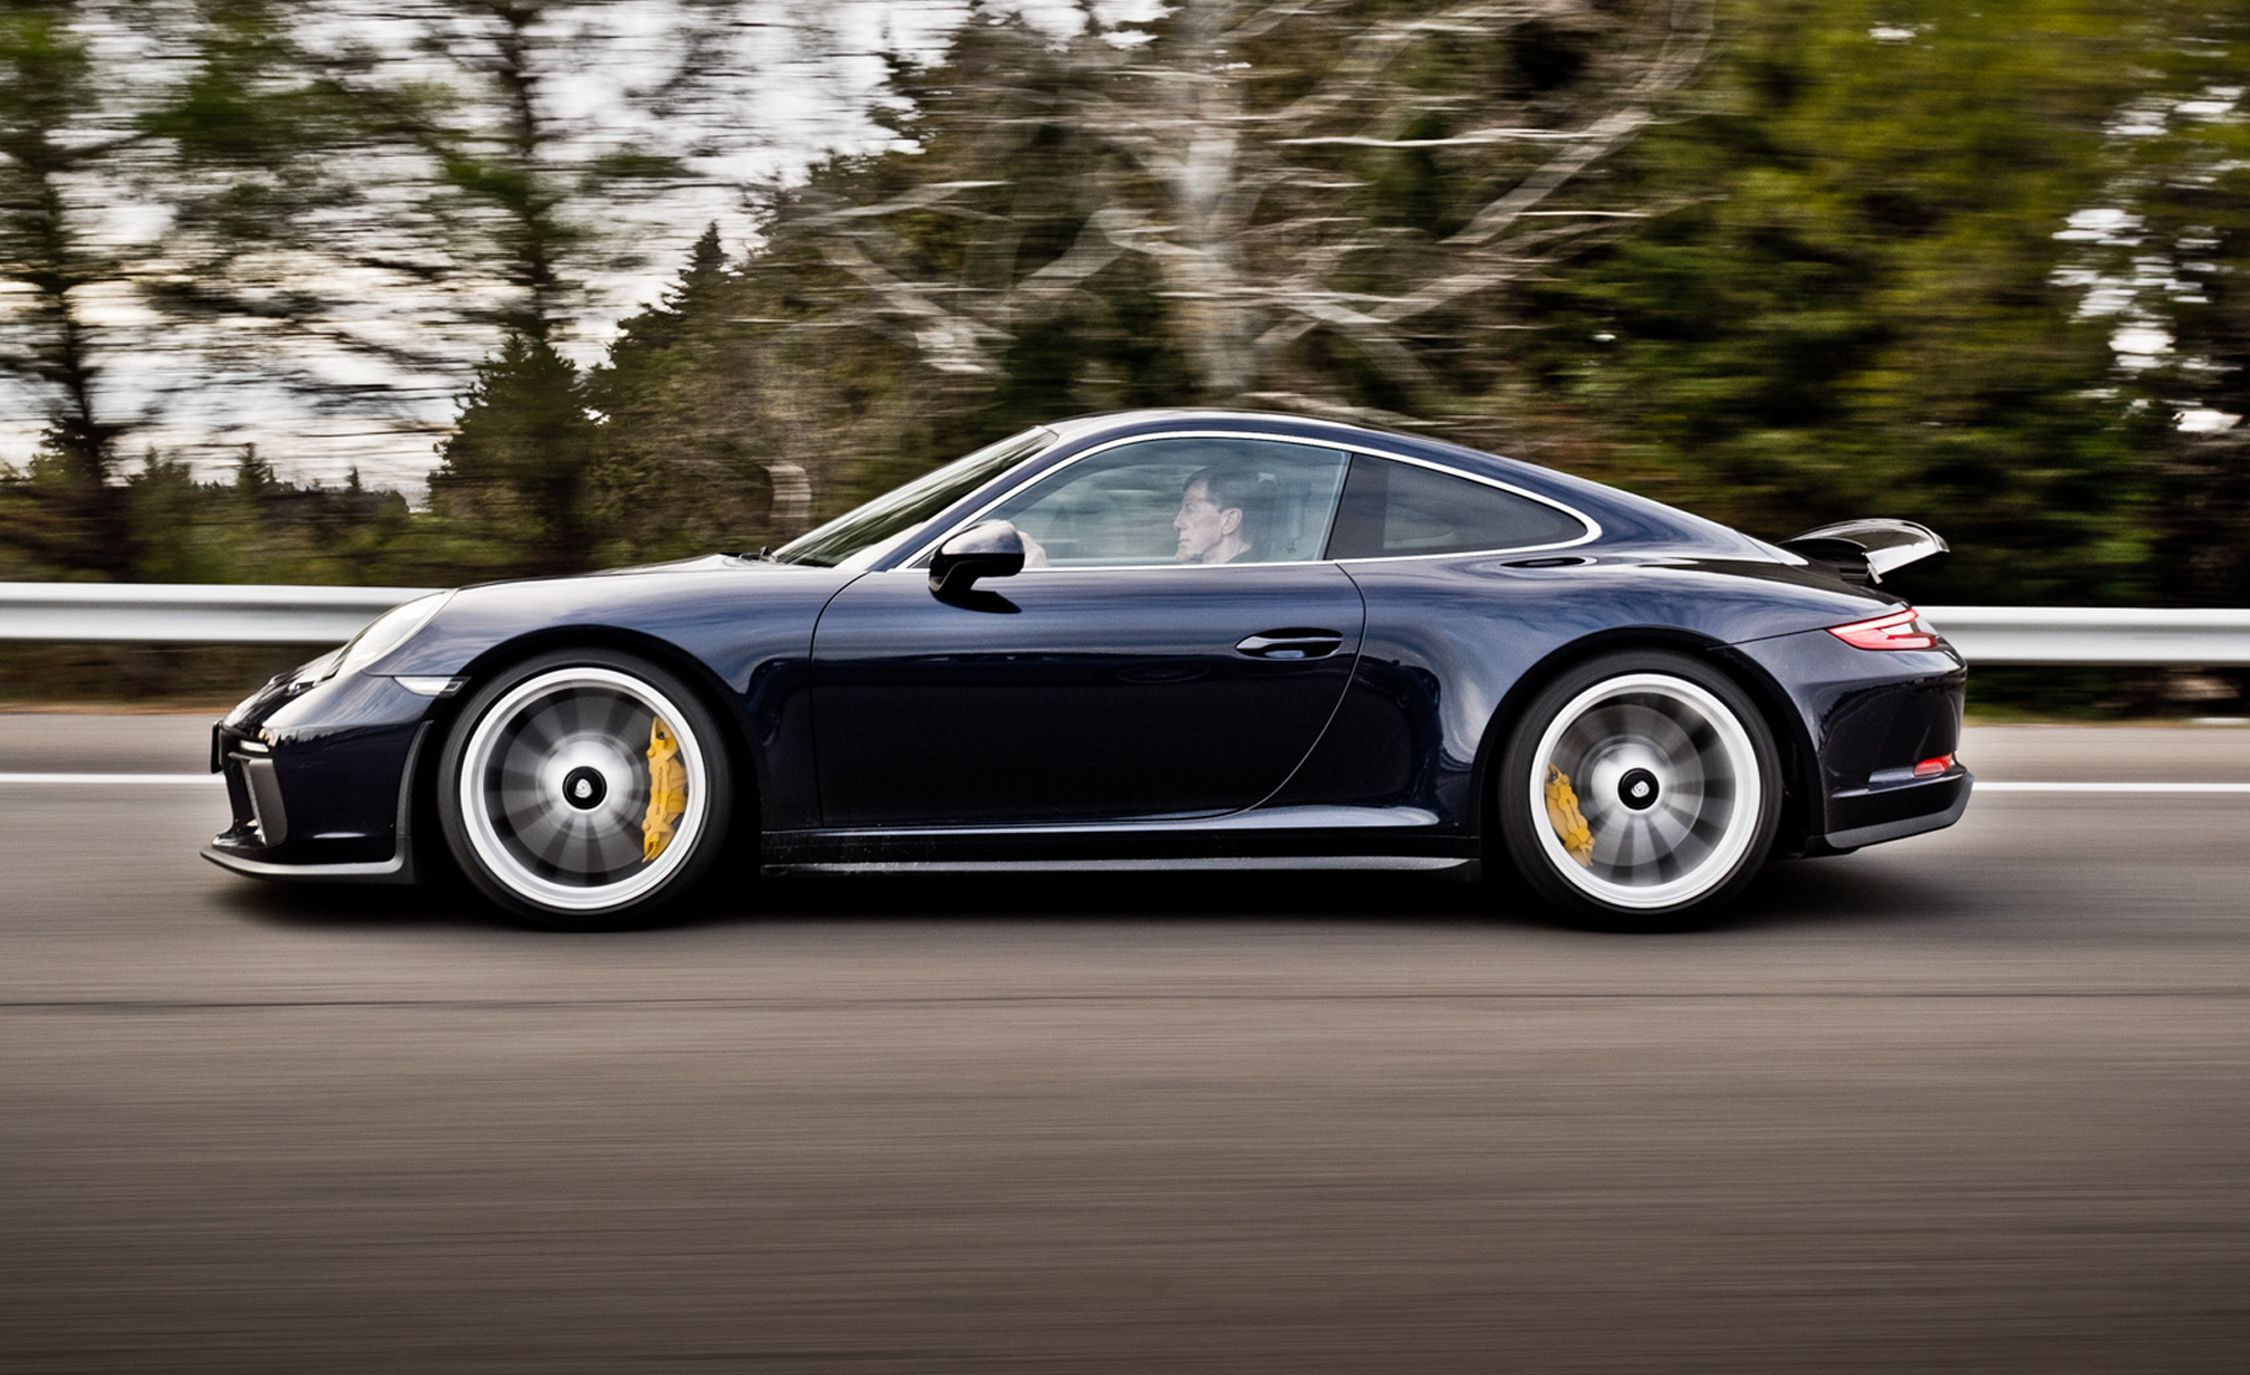 2018 Porsche 911 Gt3 >> 2018 Porsche 911 GT3 with Touring Package First Drive | Review | Car and Driver